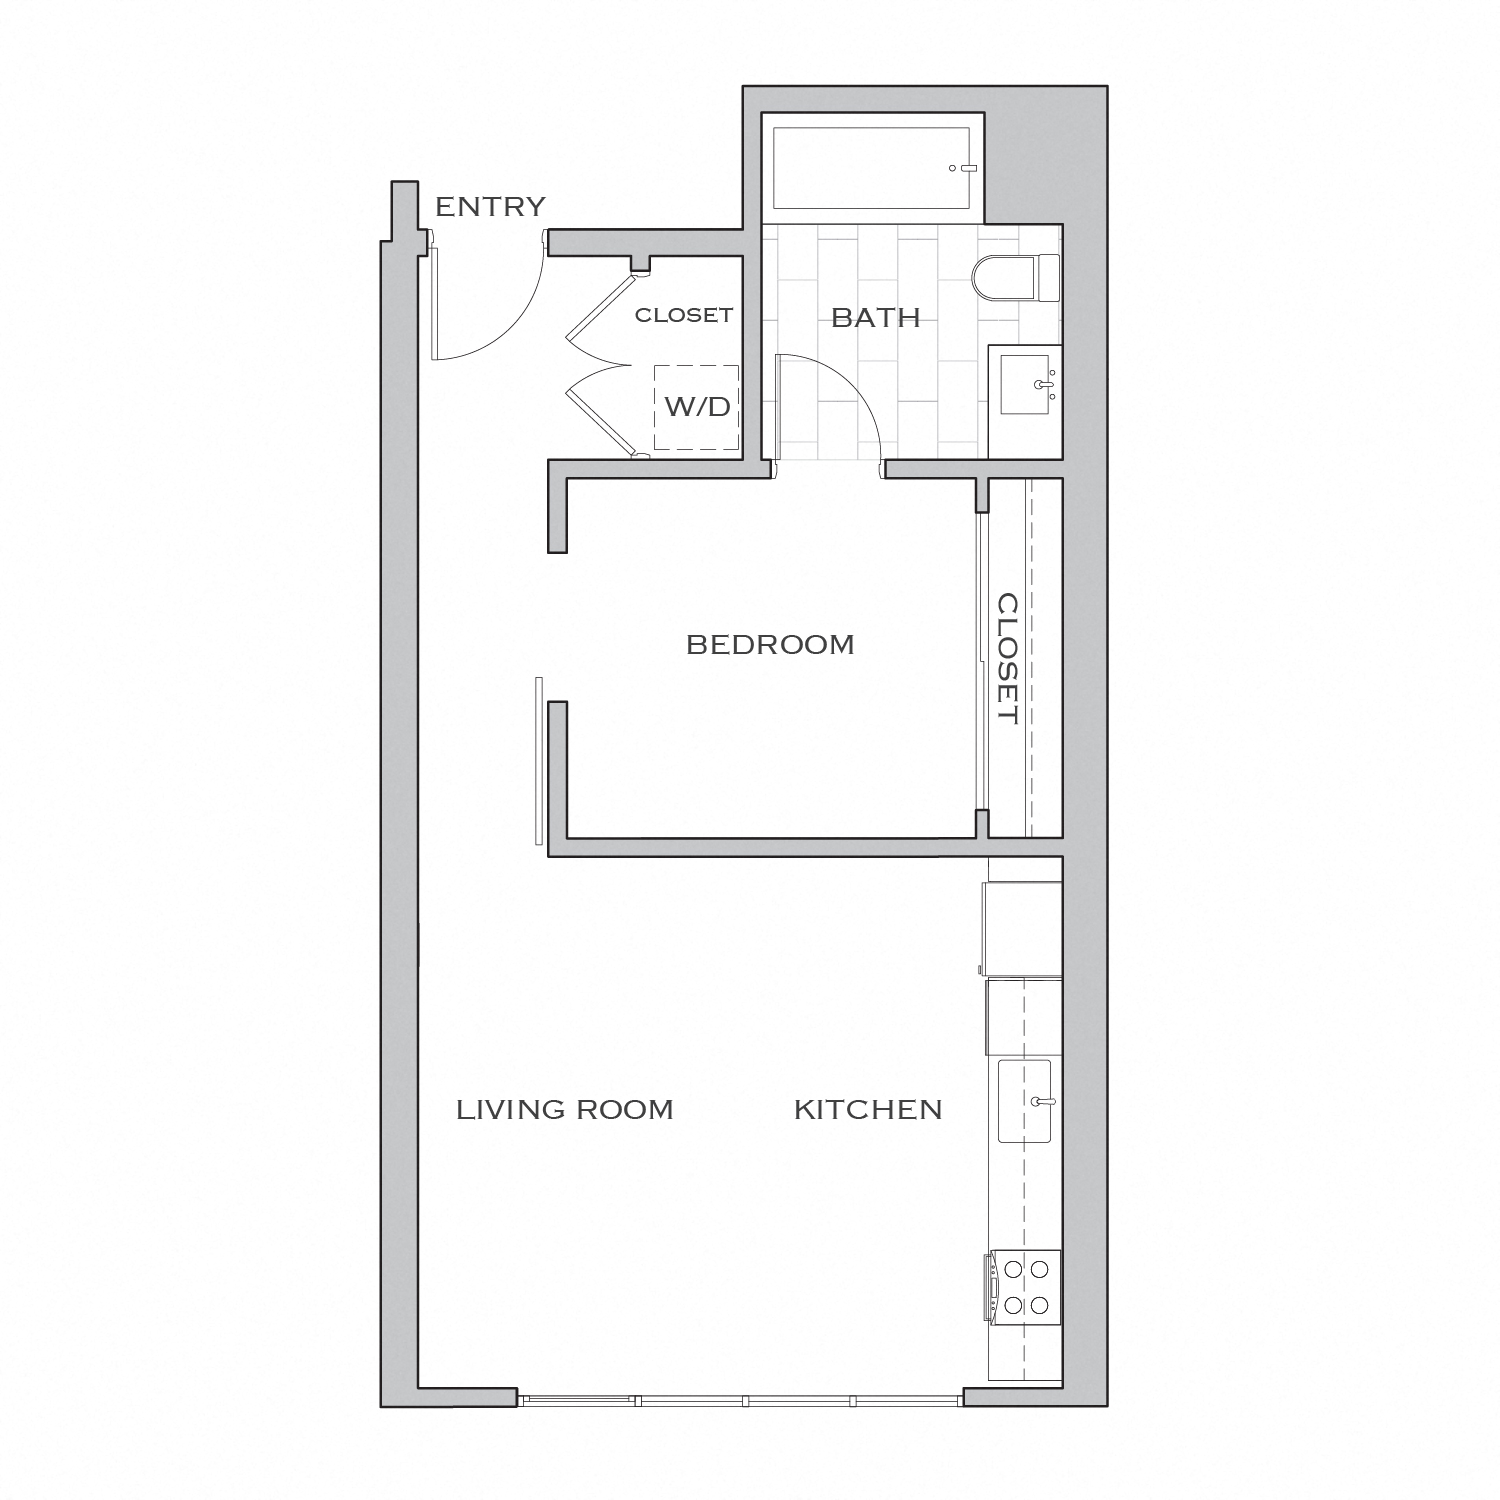 Nielson Three floor plan diagram. One bedroom, one bathroom, an open kitchen and living area, and a washer dryer.